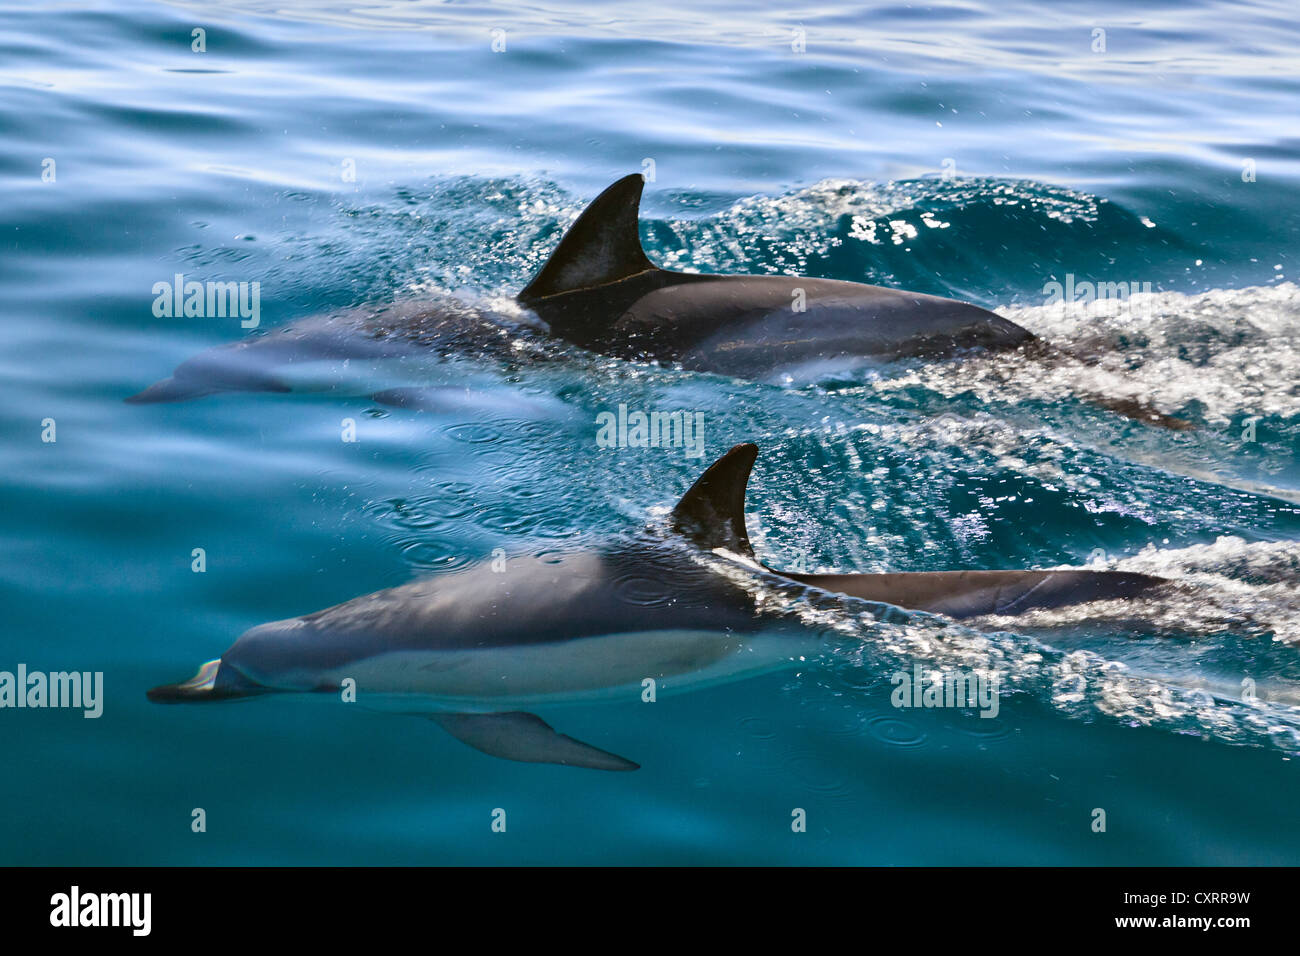 Short-beaked common dolphins (Delphinus delphis), Atlantic, off the Algarve, Portugal, Europe - Stock Image